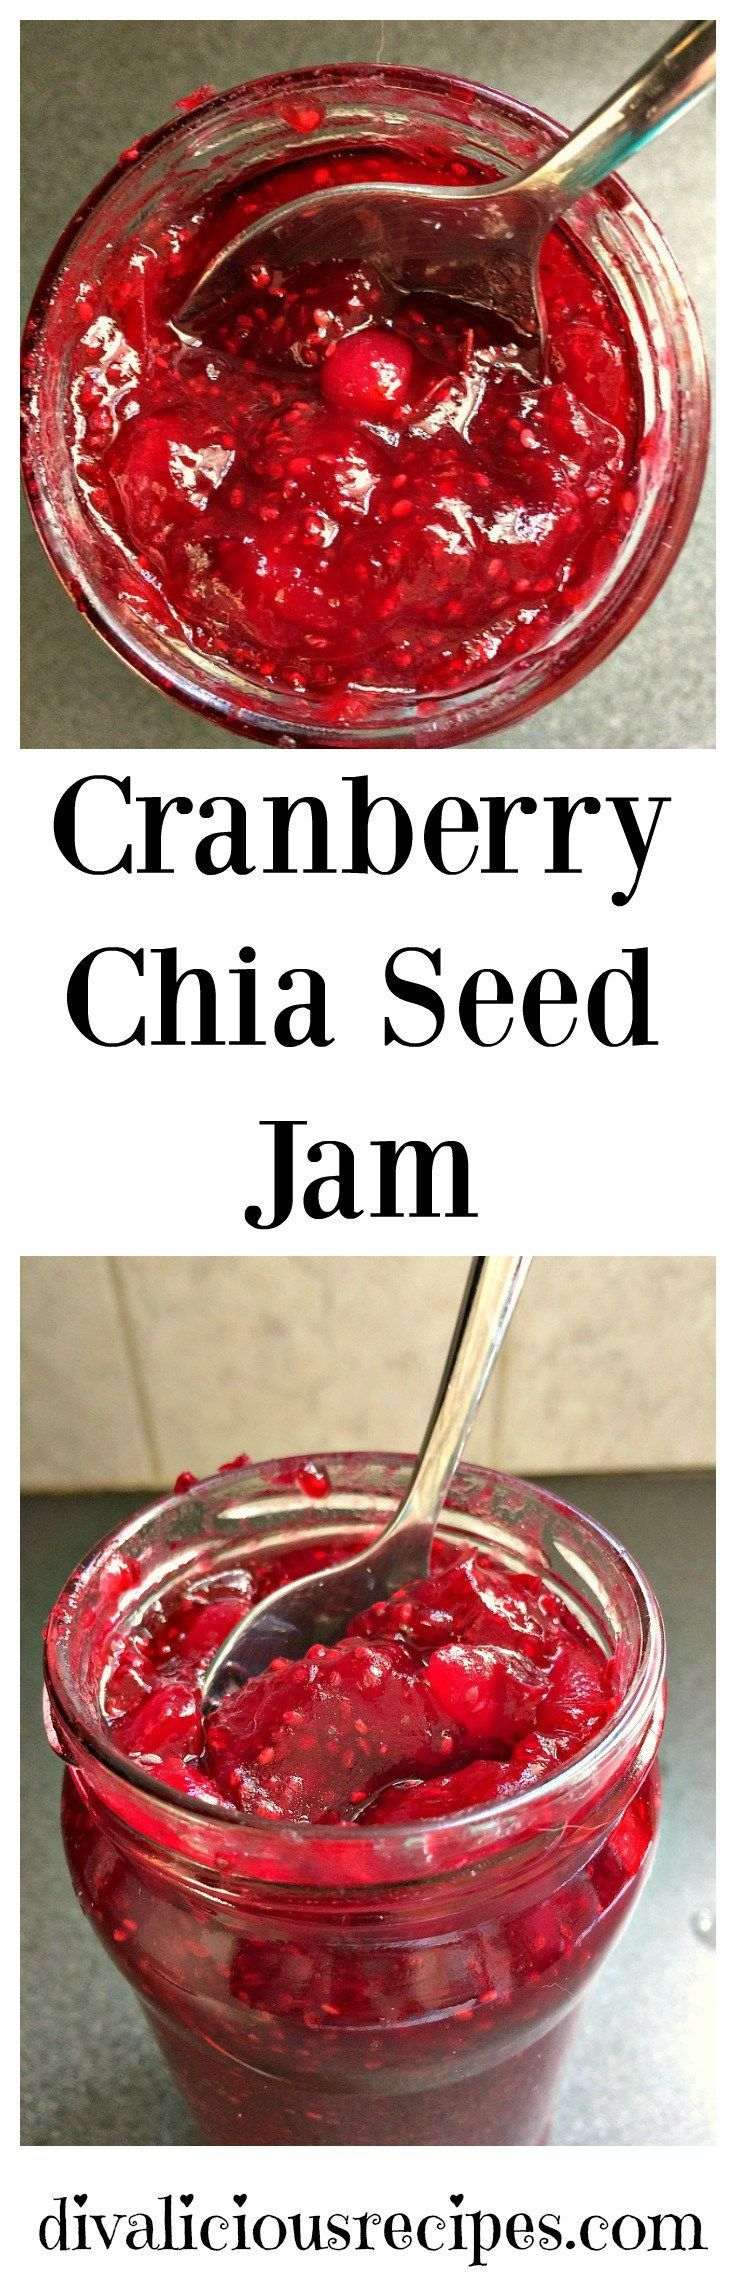 A cranberry jam that is thickened with chia seeds. Chia seeds are very absorbent and are a healthier alternative to thicken sauces and jams. Recipe: http://divaliciousrecipes.com/2016/12/12/cranberry-chia-jam/